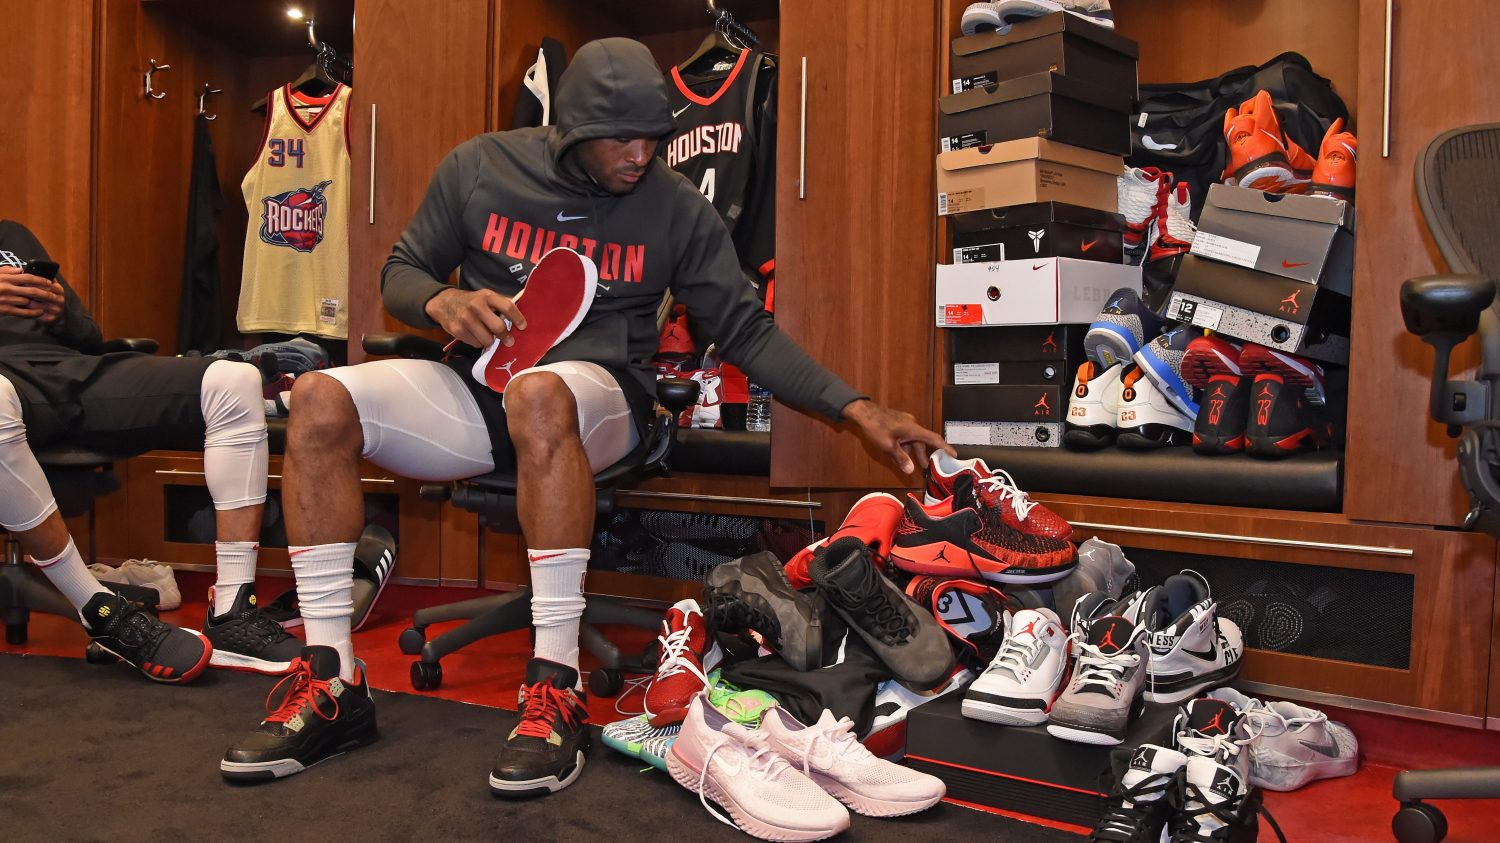 785bbae243a The complete — and insane — list of P.J. Tucker's 2018 NBA playoff sneakers